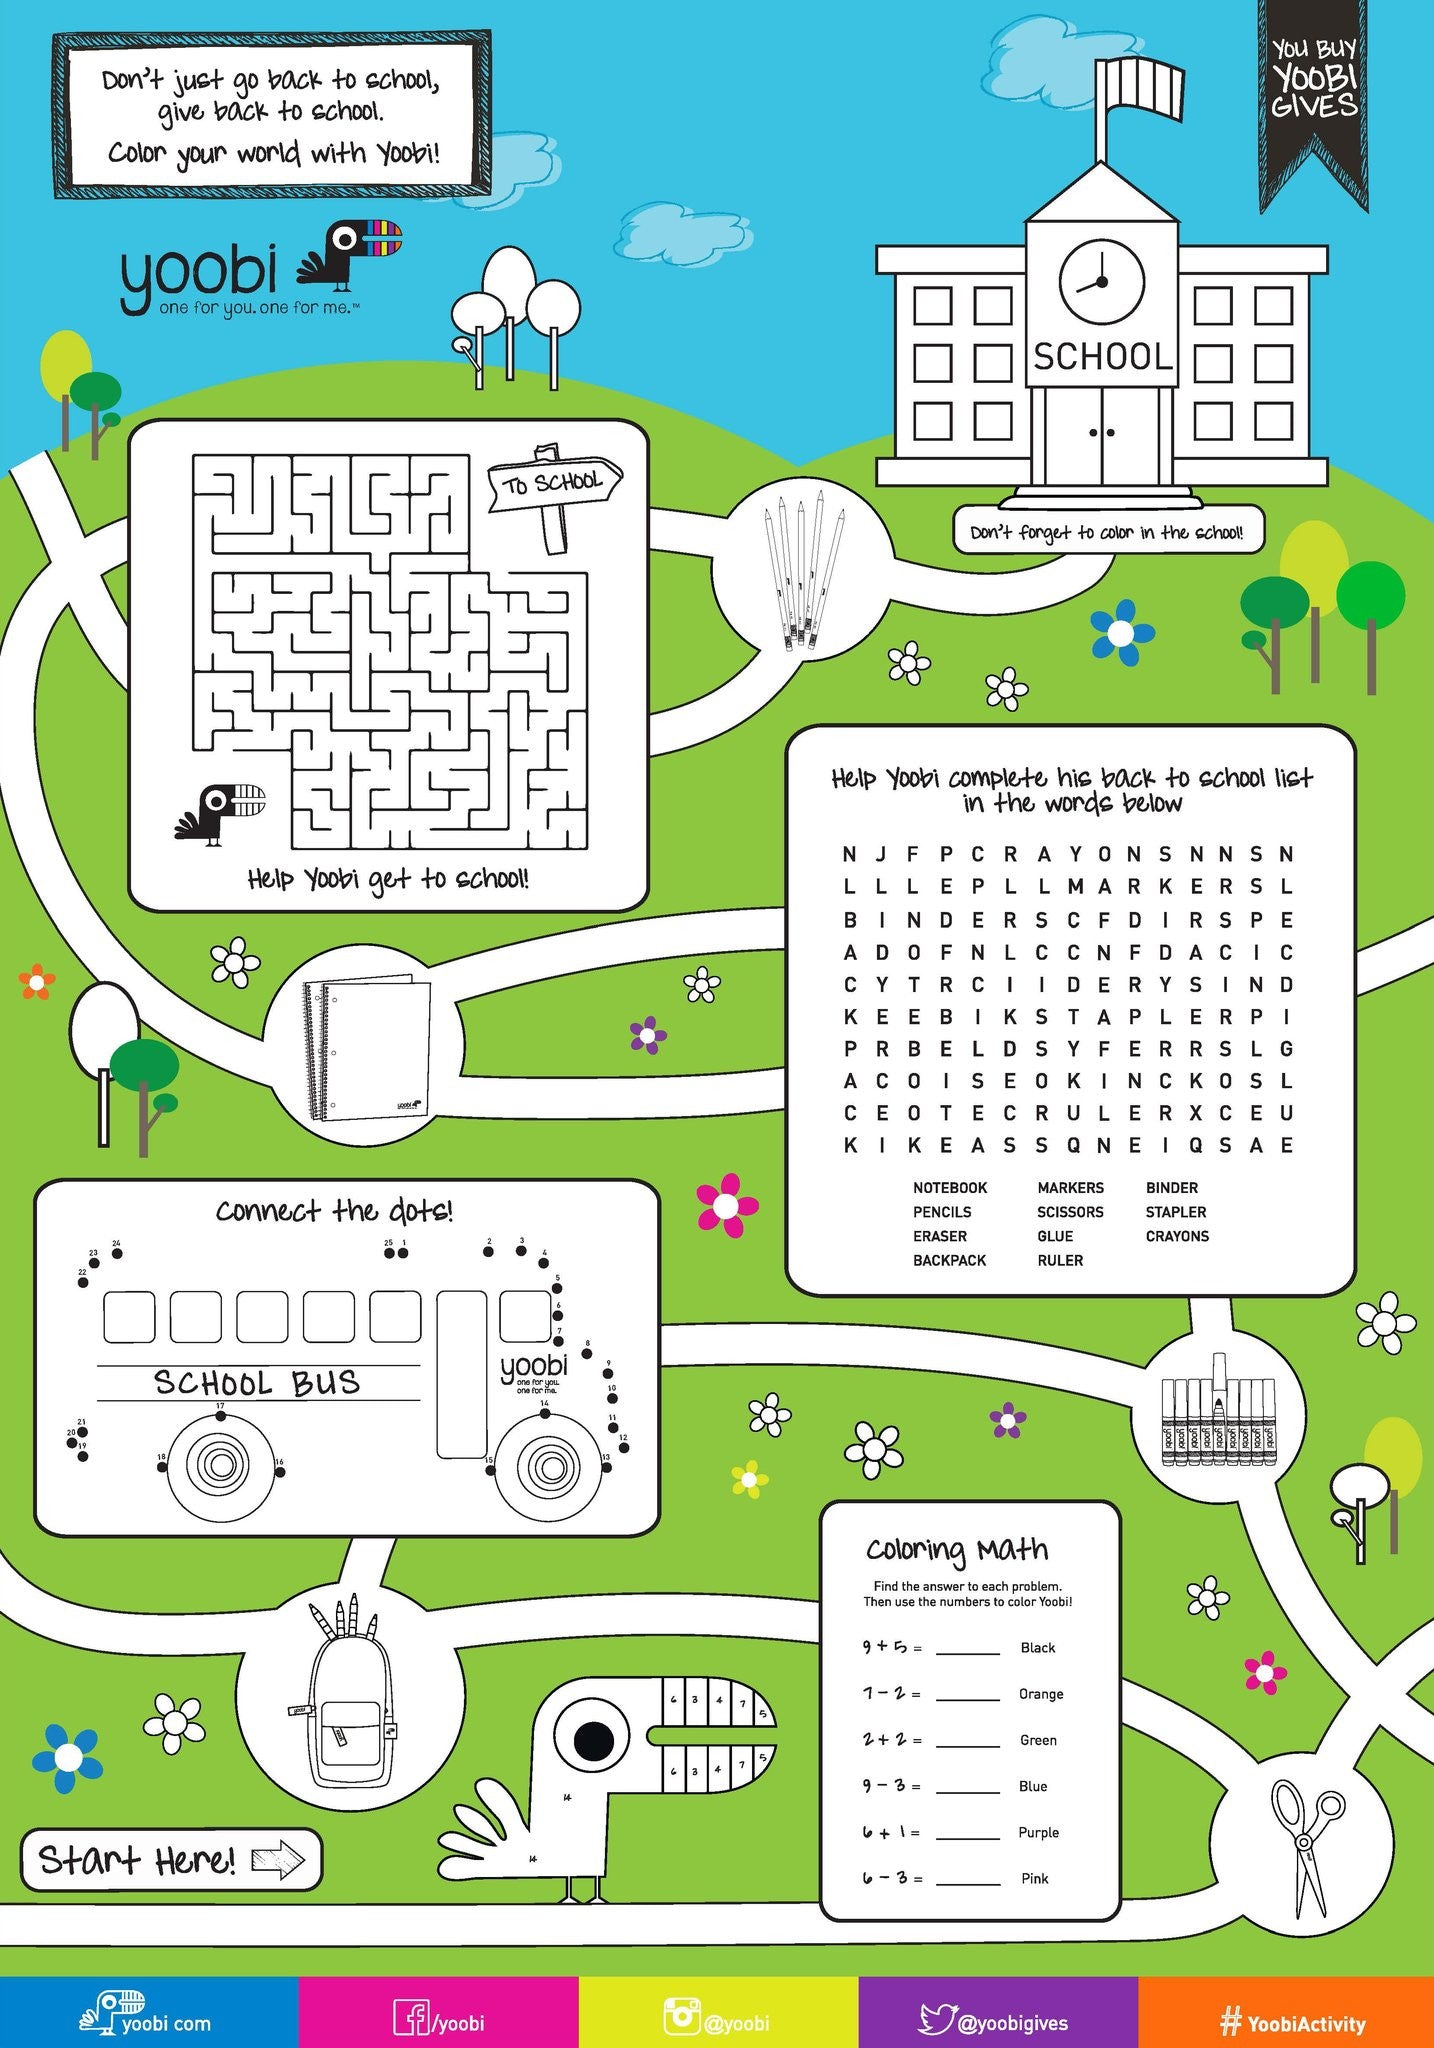 Downloadable Activity Poster